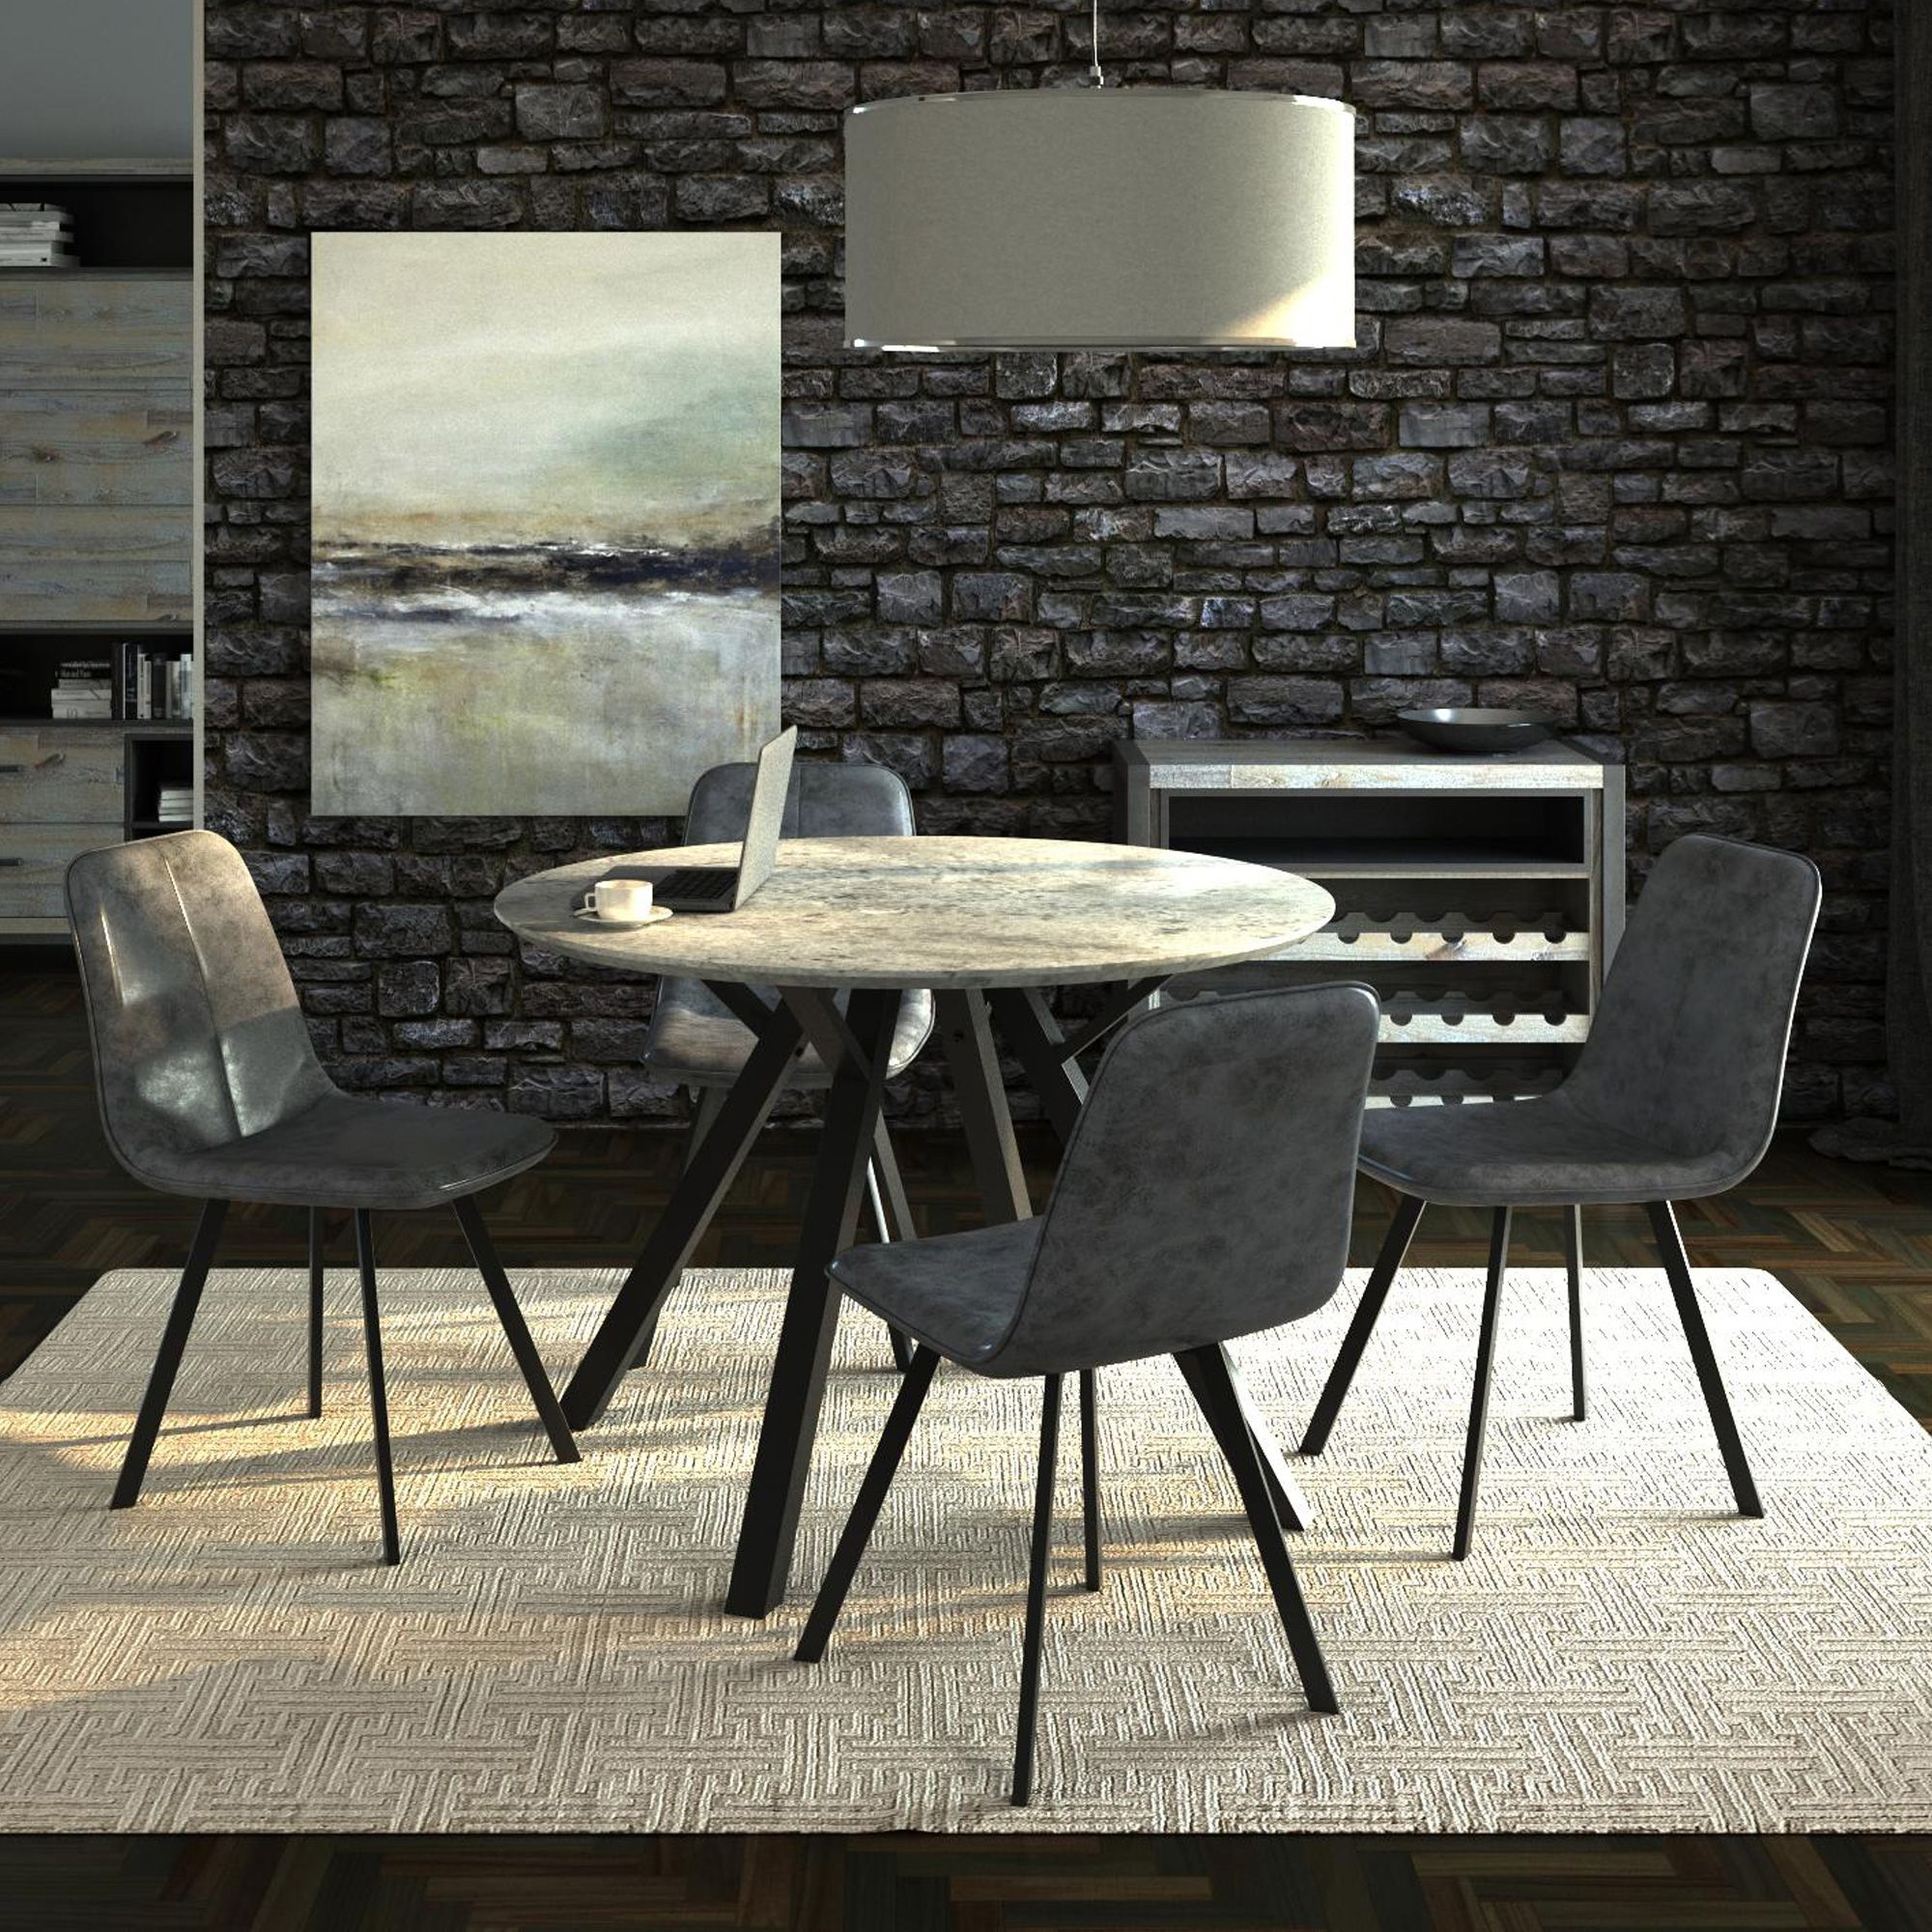 Boden 4 Person Round Dining Table 4 Boden Faux Leather Dining Chairs All Dining Collections Meubles